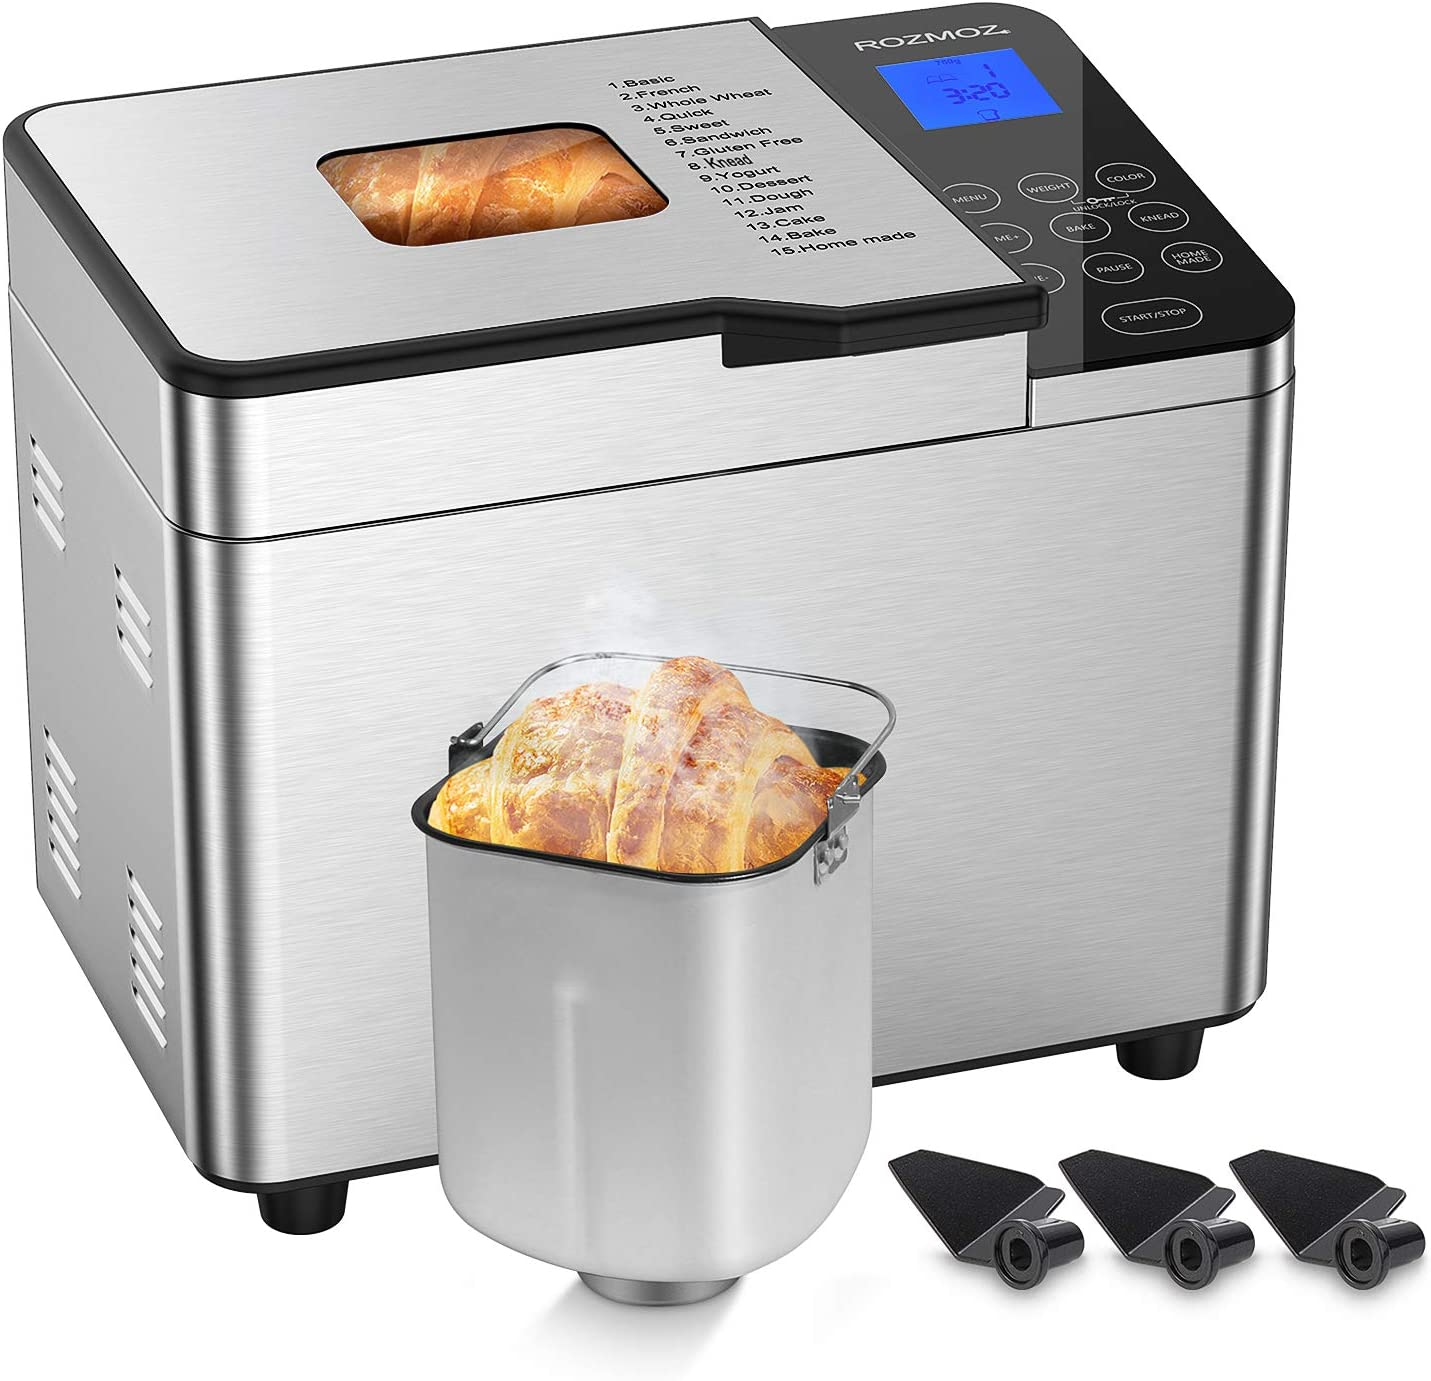 Rozmoz Pro Bread Machine with Homemade Function, Stainless Steel Bread Maker 15-in-1 2LB XL Digital Breadmaker with Child Lock, 3 Crust Colors 3 Loaf Sizes, 8 Deluxe Accessory kits